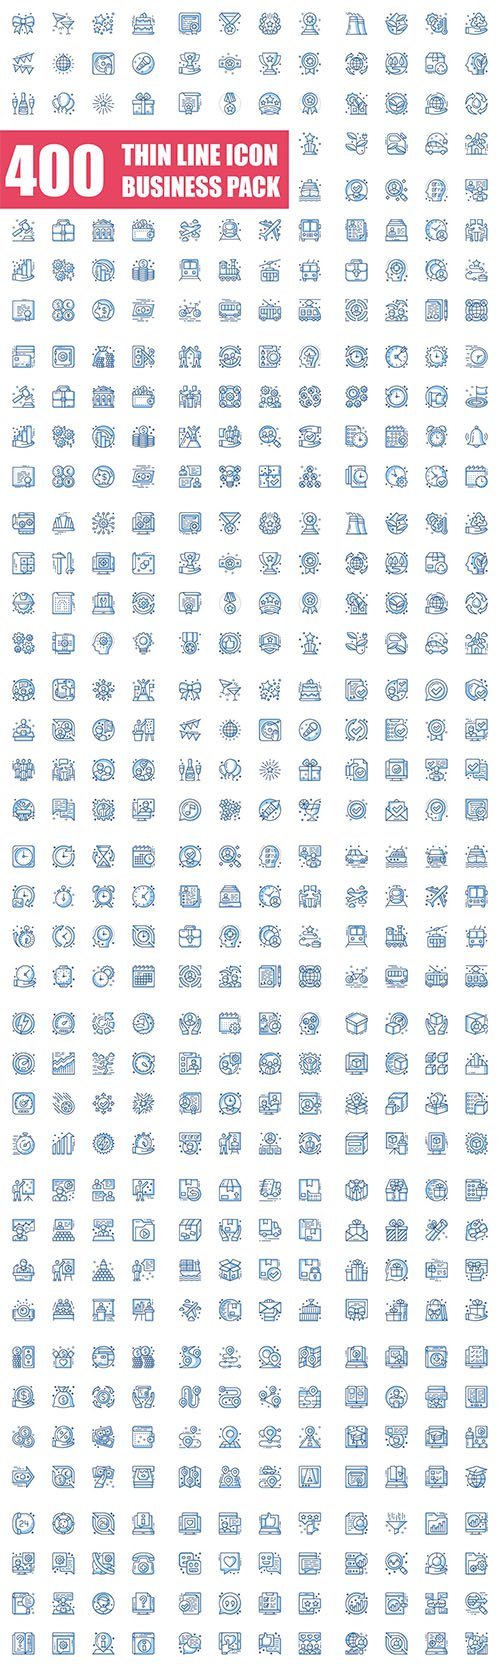 Thin Line Icons Business Pack